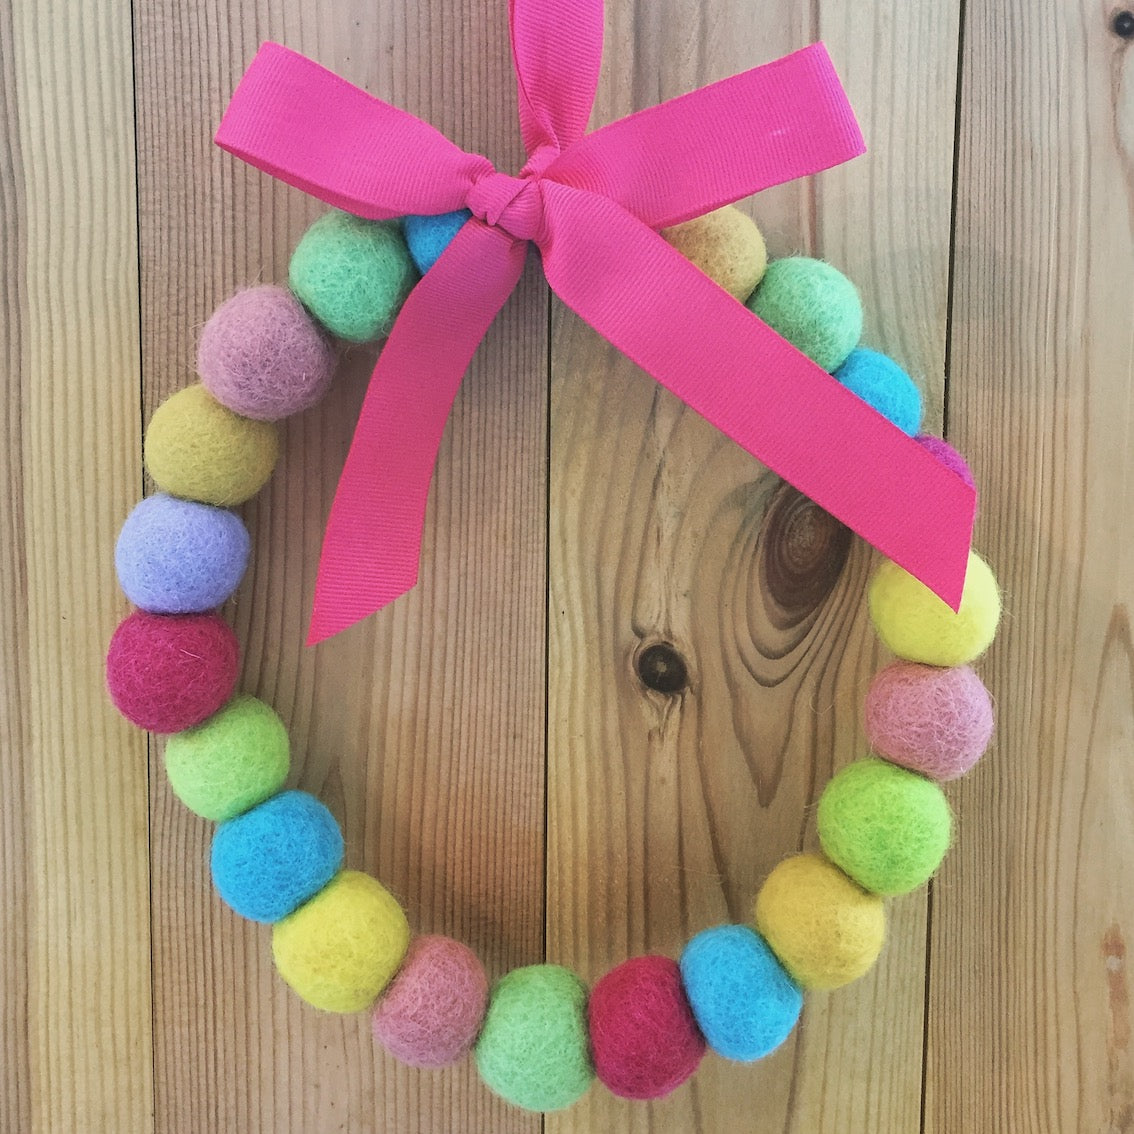 Felt Ball Wreath - Dales Country Interiors